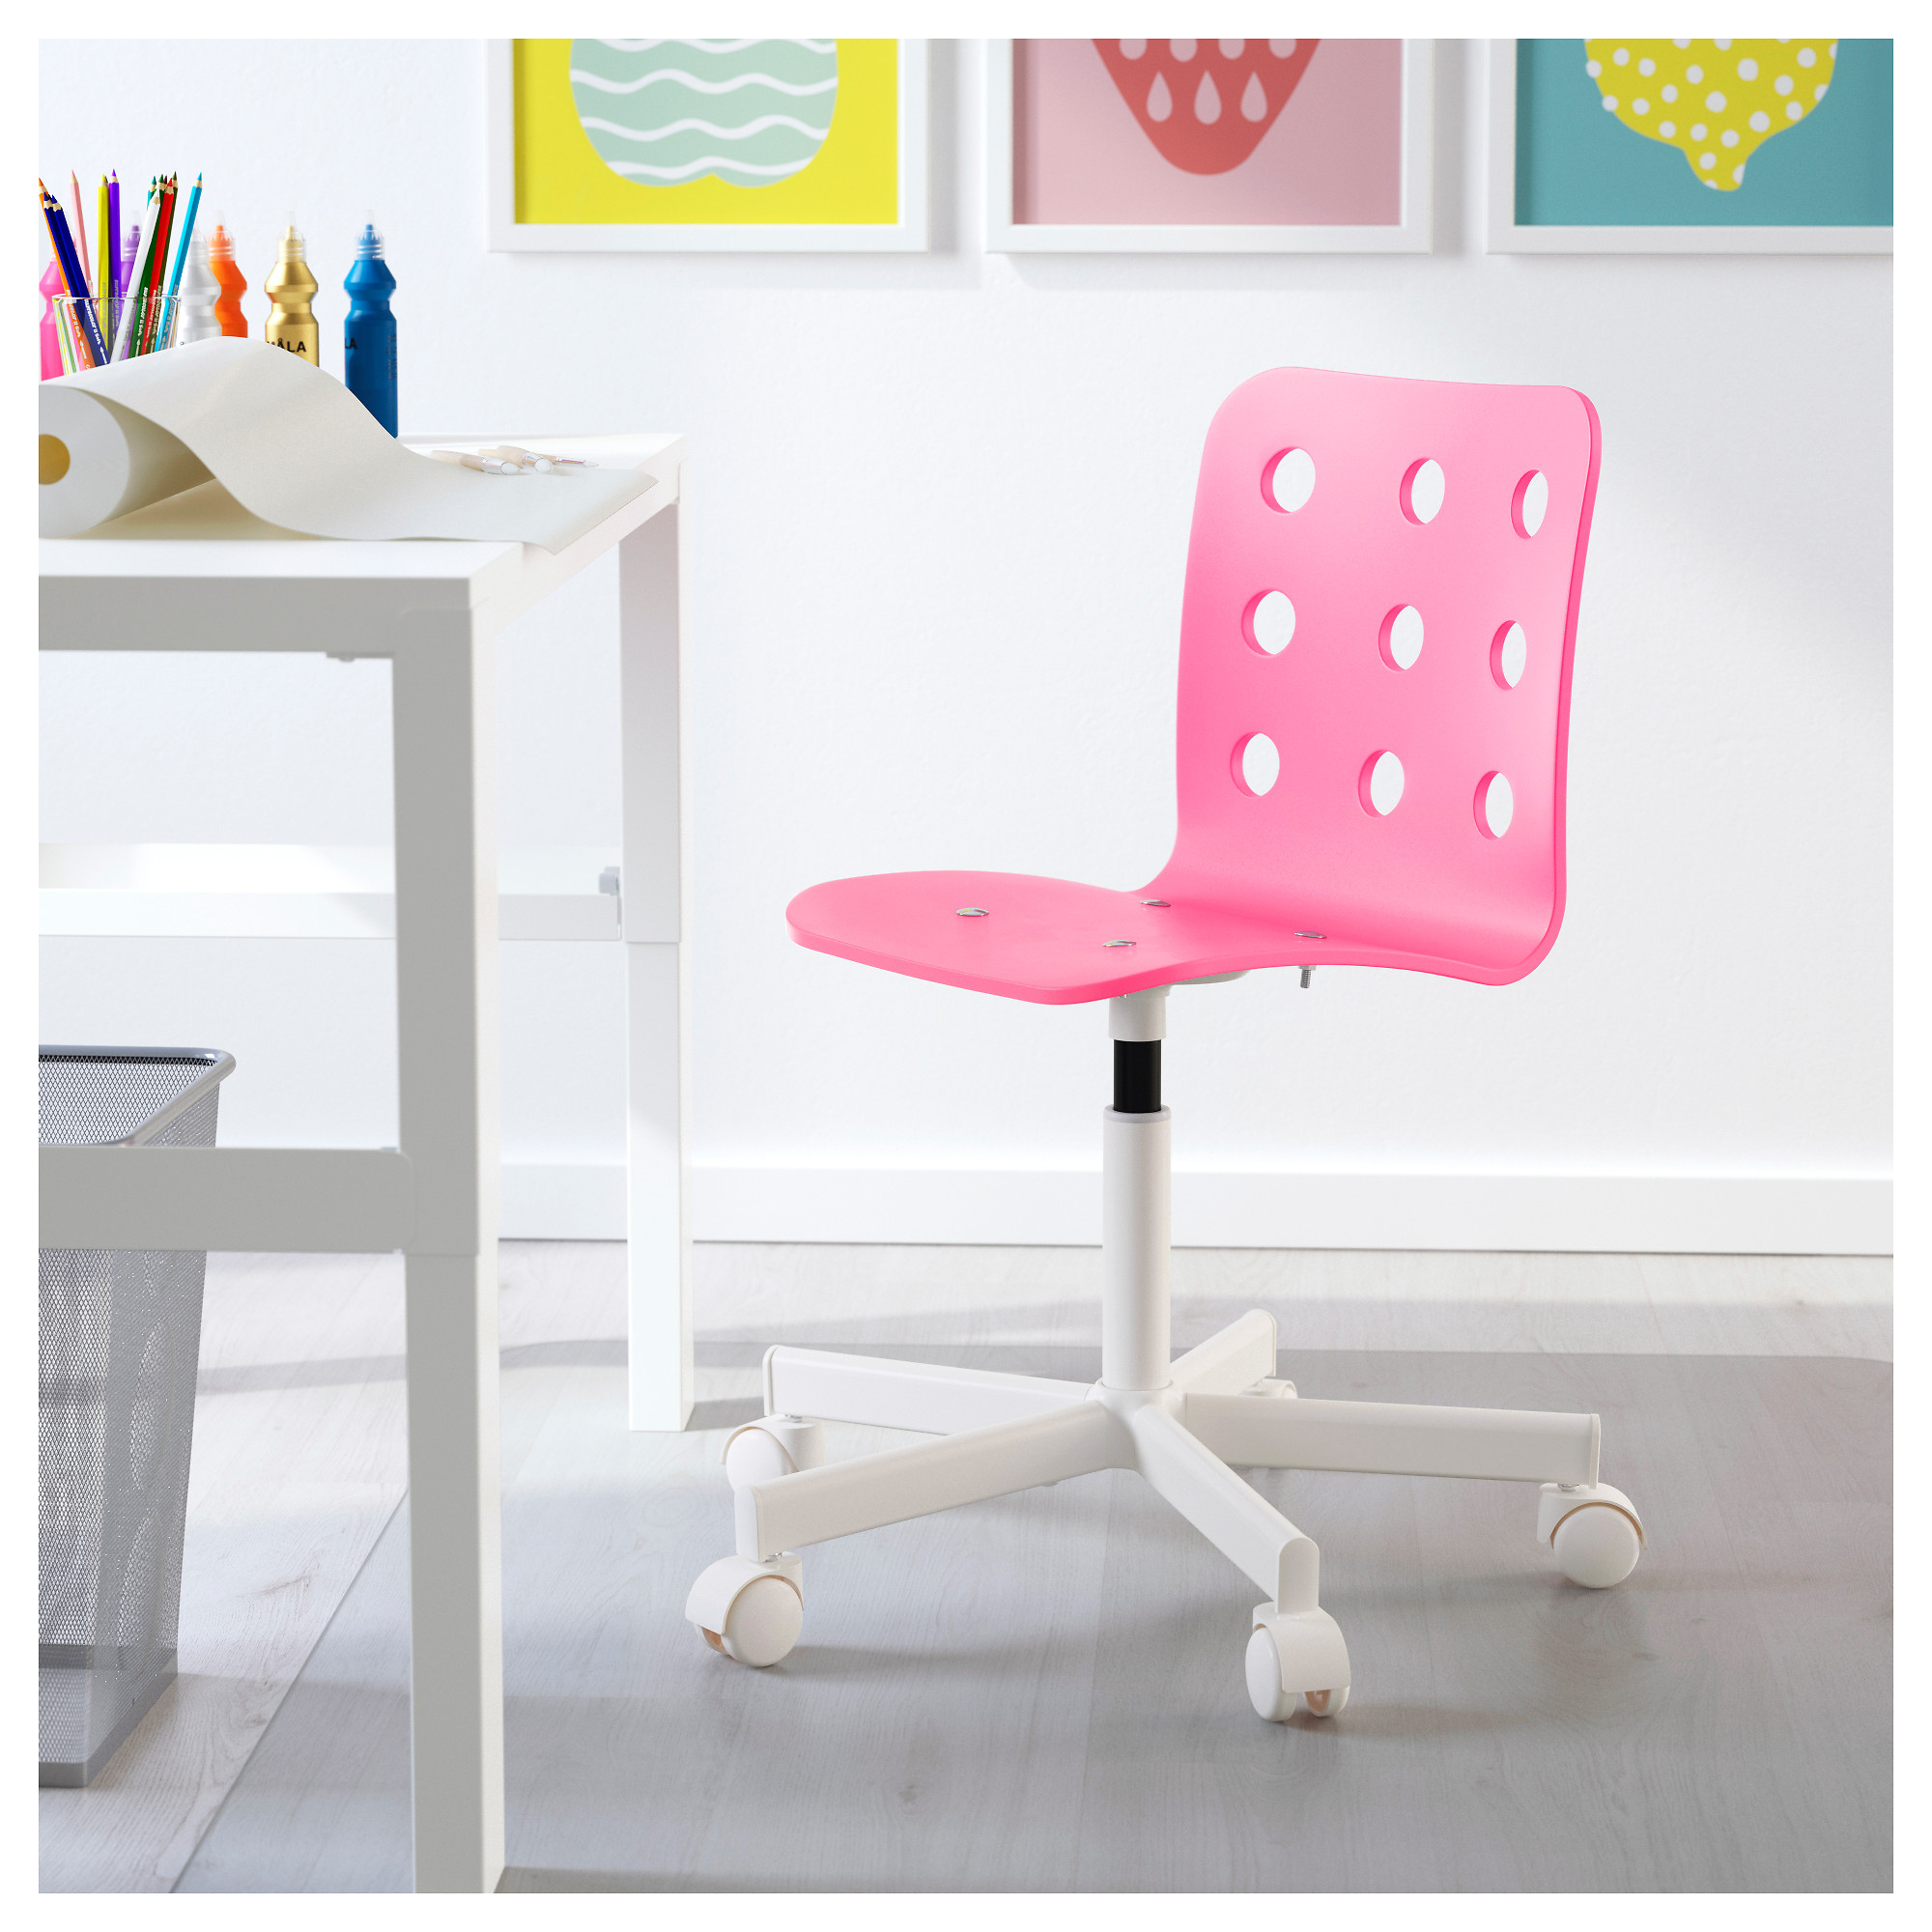 Ikea Stühle Jules Jules Children's Desk Chair - Pink, White - Ikea